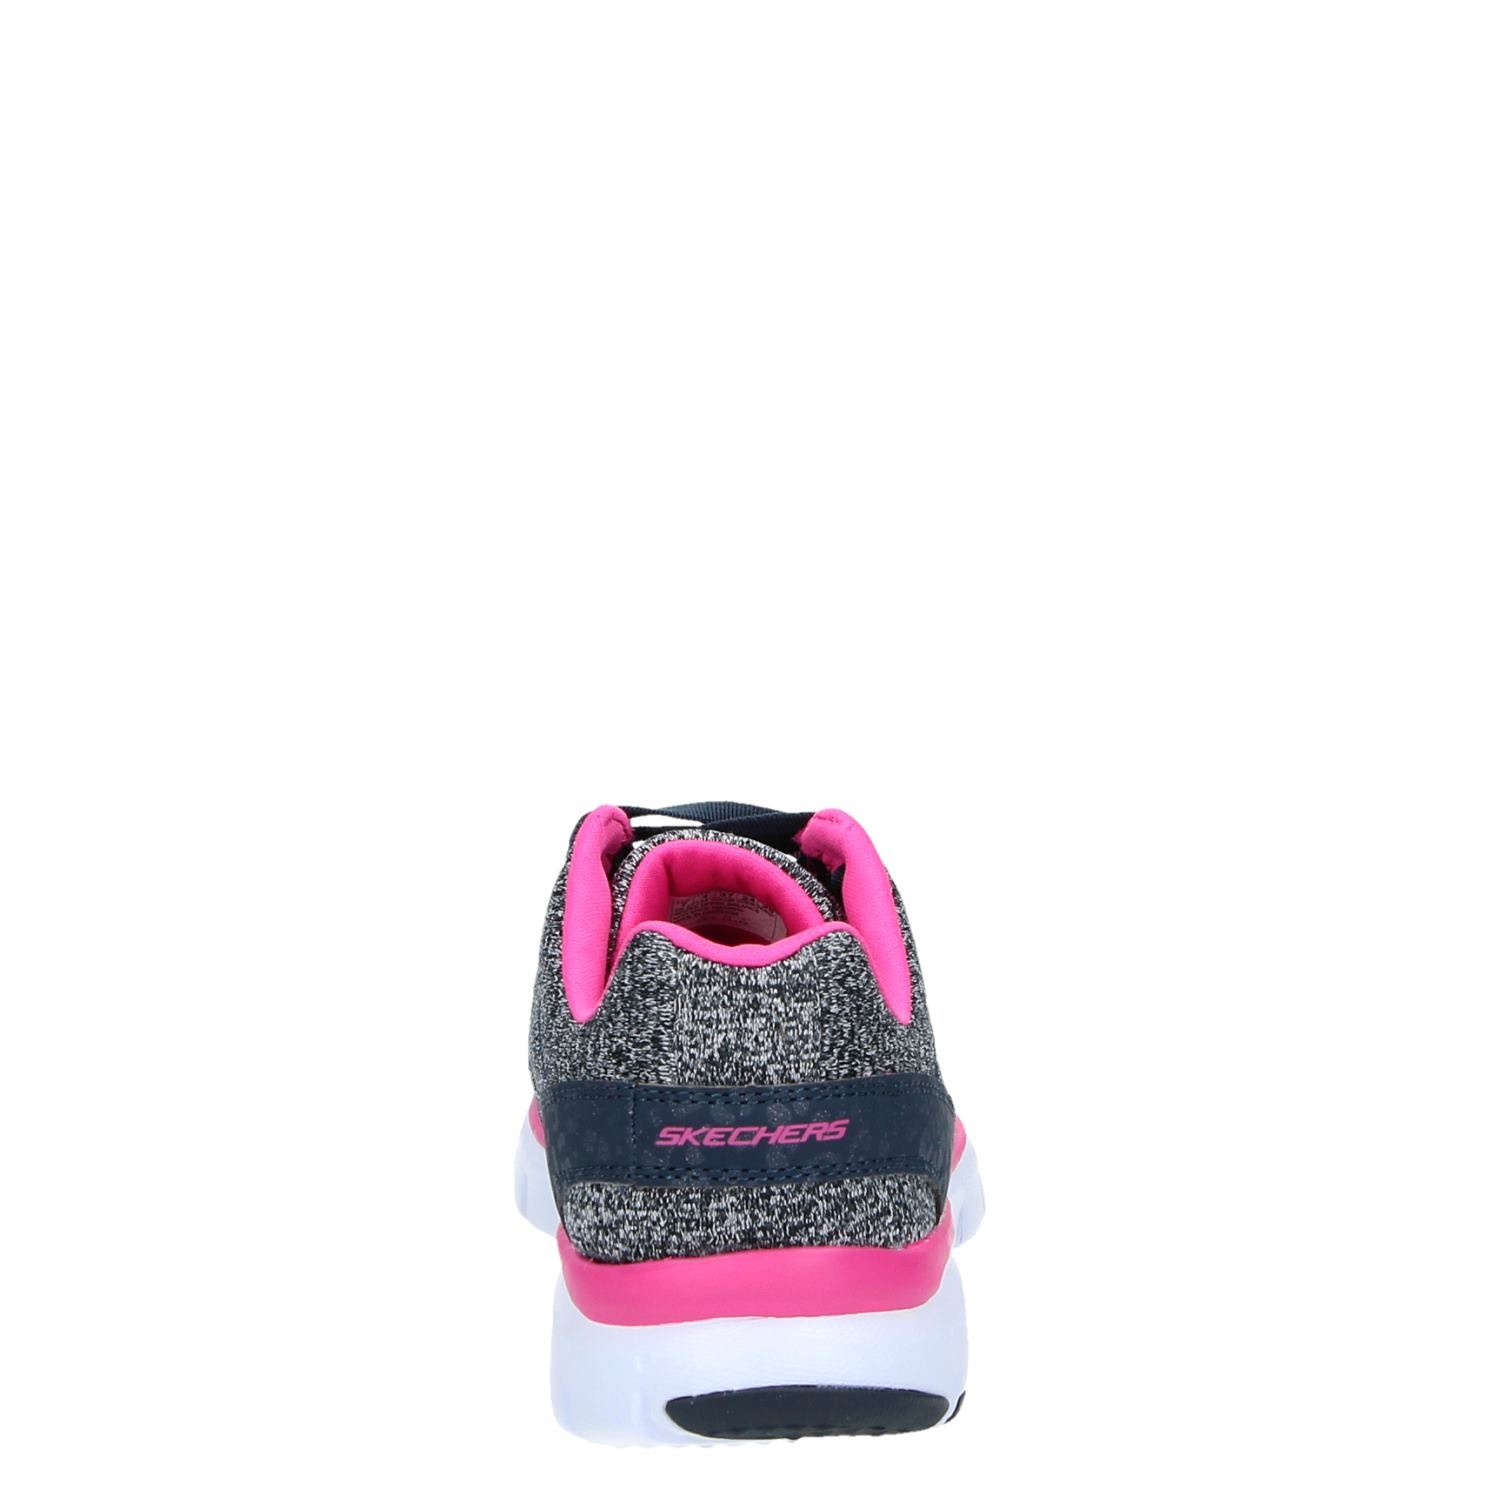 Skechers Dames Skechers Relaxed Fit Dames Lage Sneakers Blauw